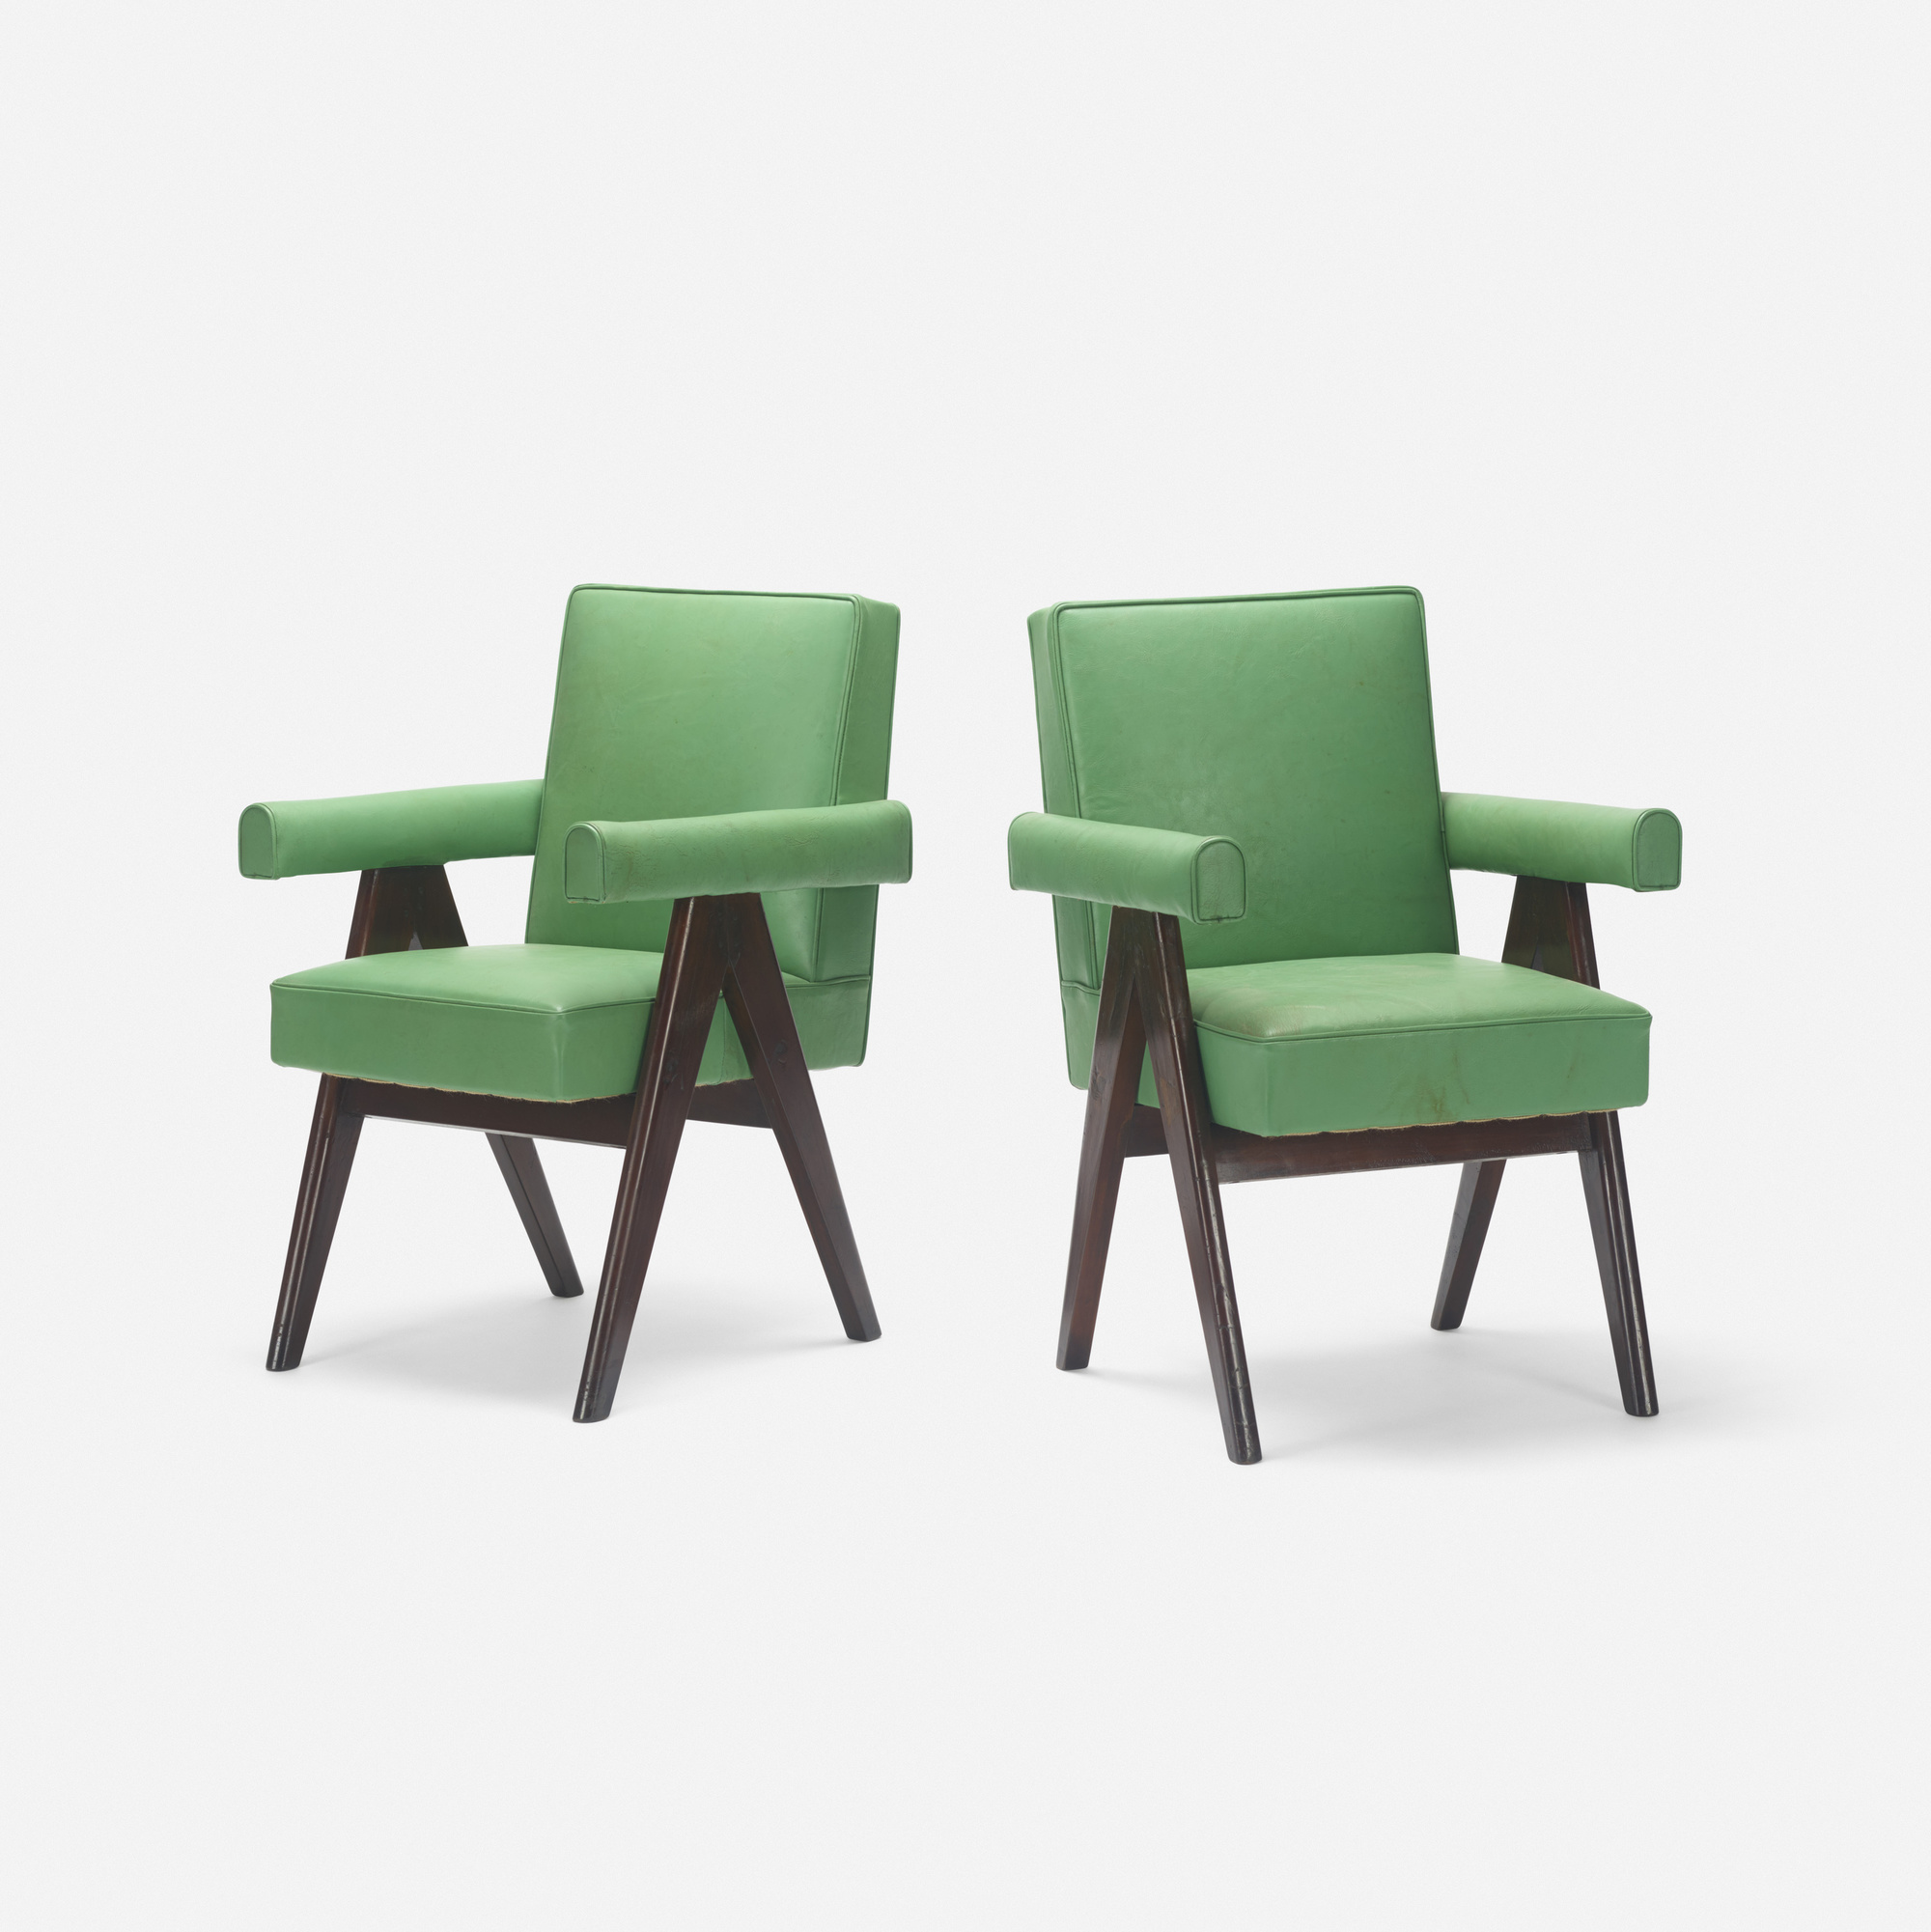 112: Pierre Jeanneret / pair of Committee armchairs from the High Court, Chandigarh (1 of 2)